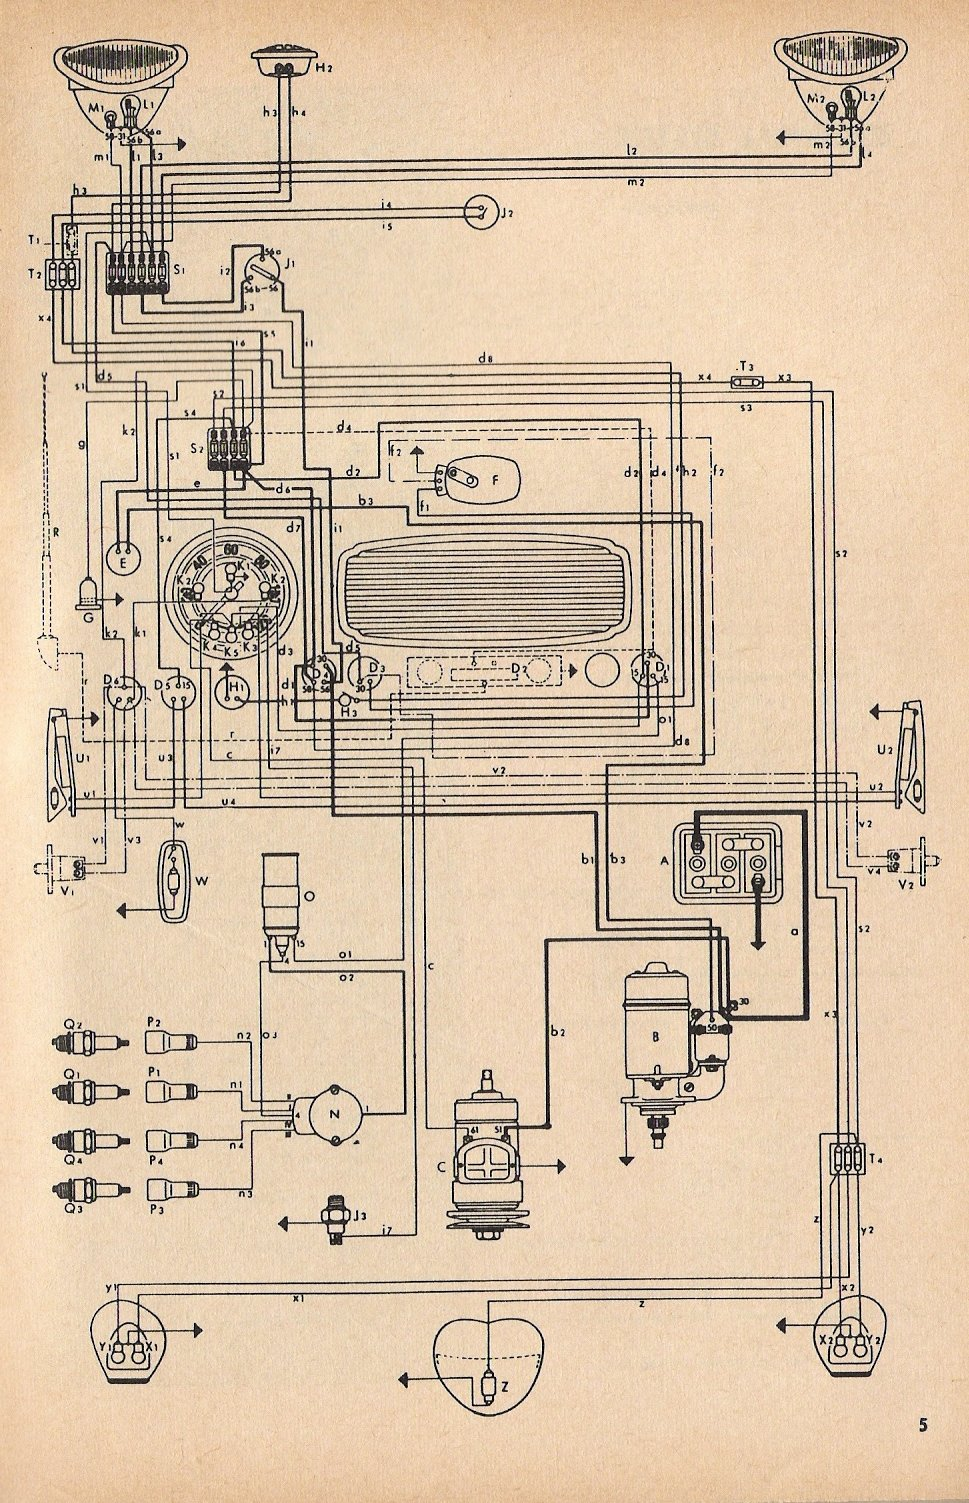 medium resolution of thesamba com type 1 wiring diagrams 1971 vw beetle wiring schematic vw beetle schematic